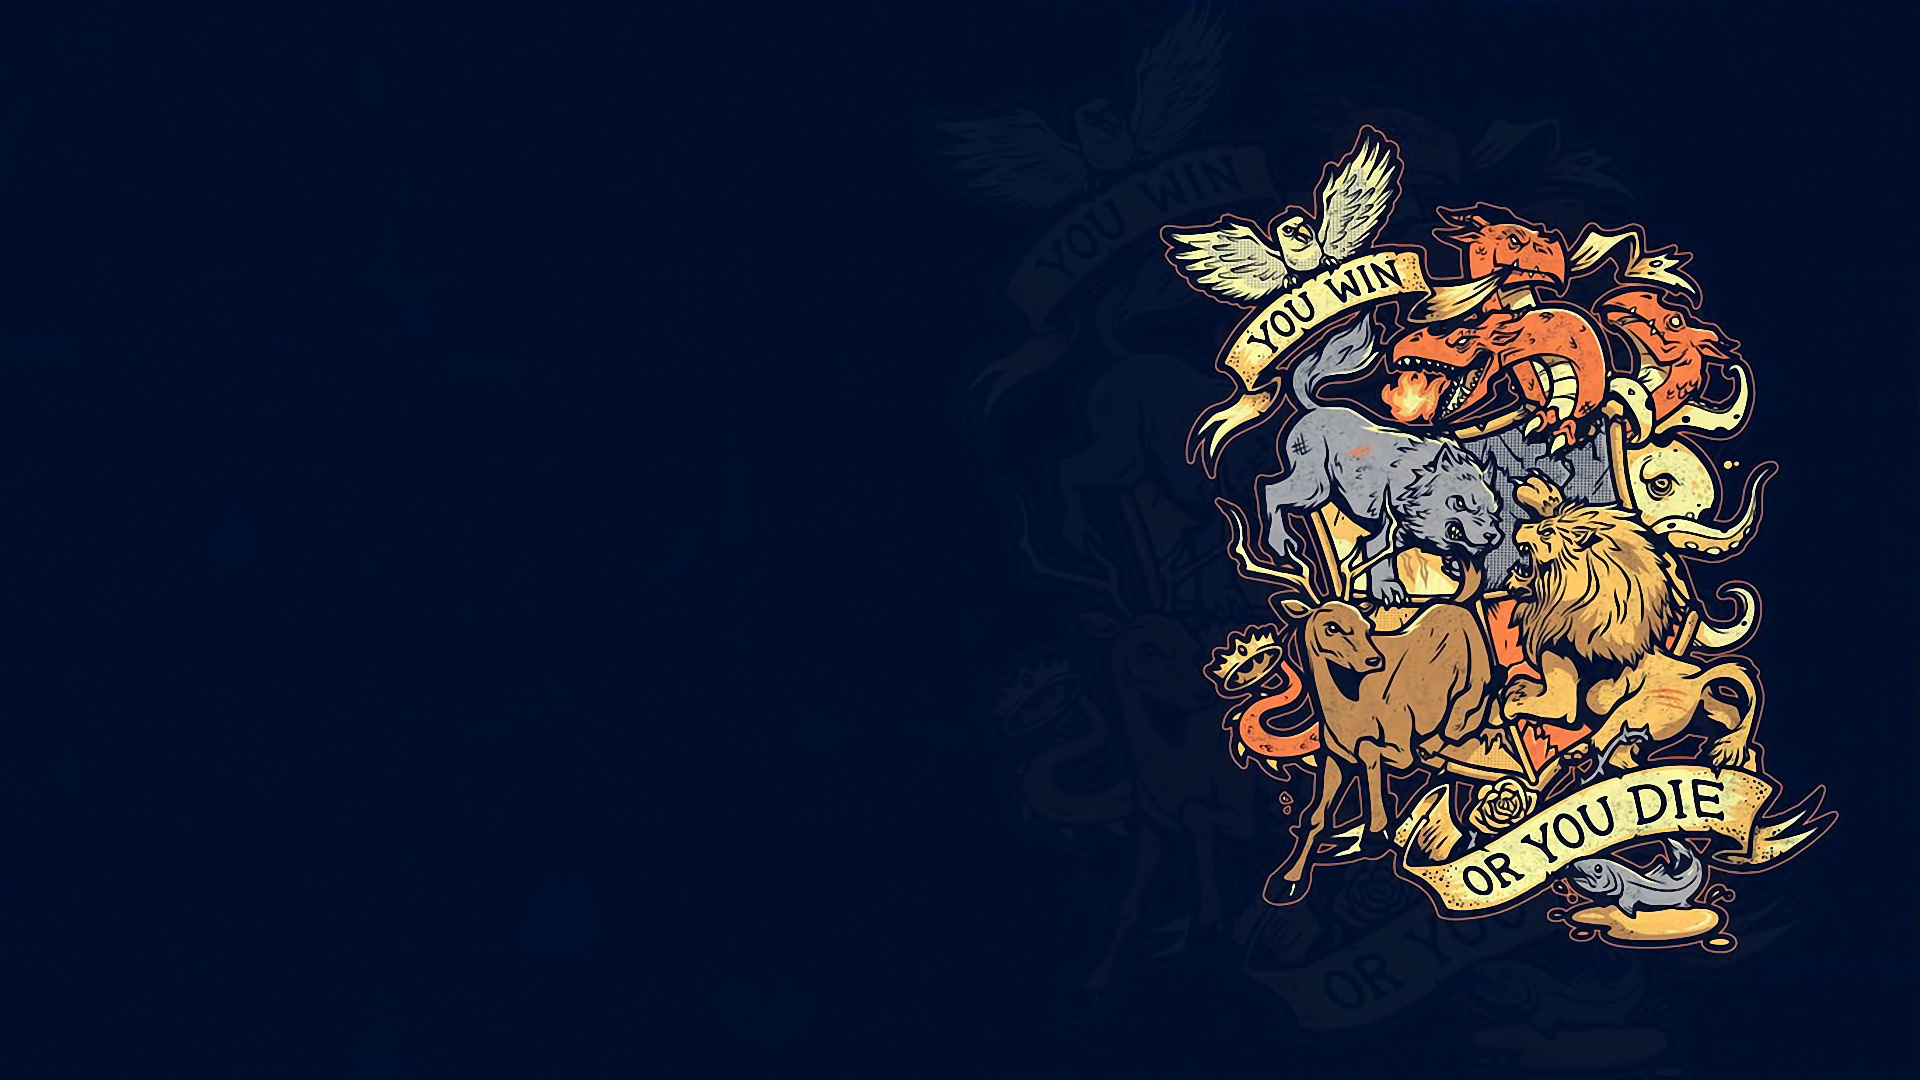 Game of Thrones fantasy crest g wallpaper 1920x1080 118284 1920x1080